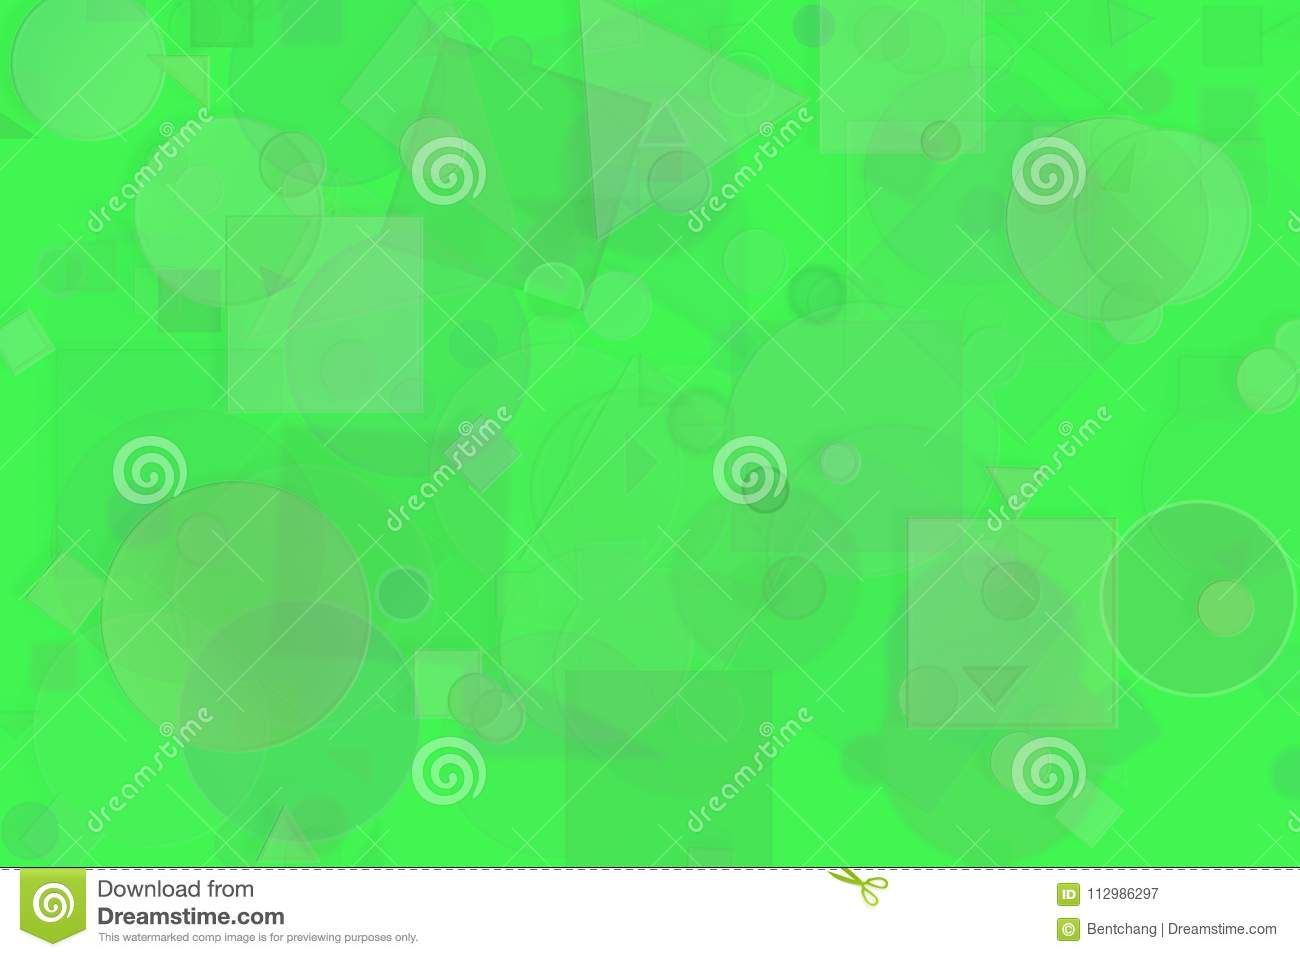 Abstract background with shape. Pattern, repeat, wallpaper, canvas & web.